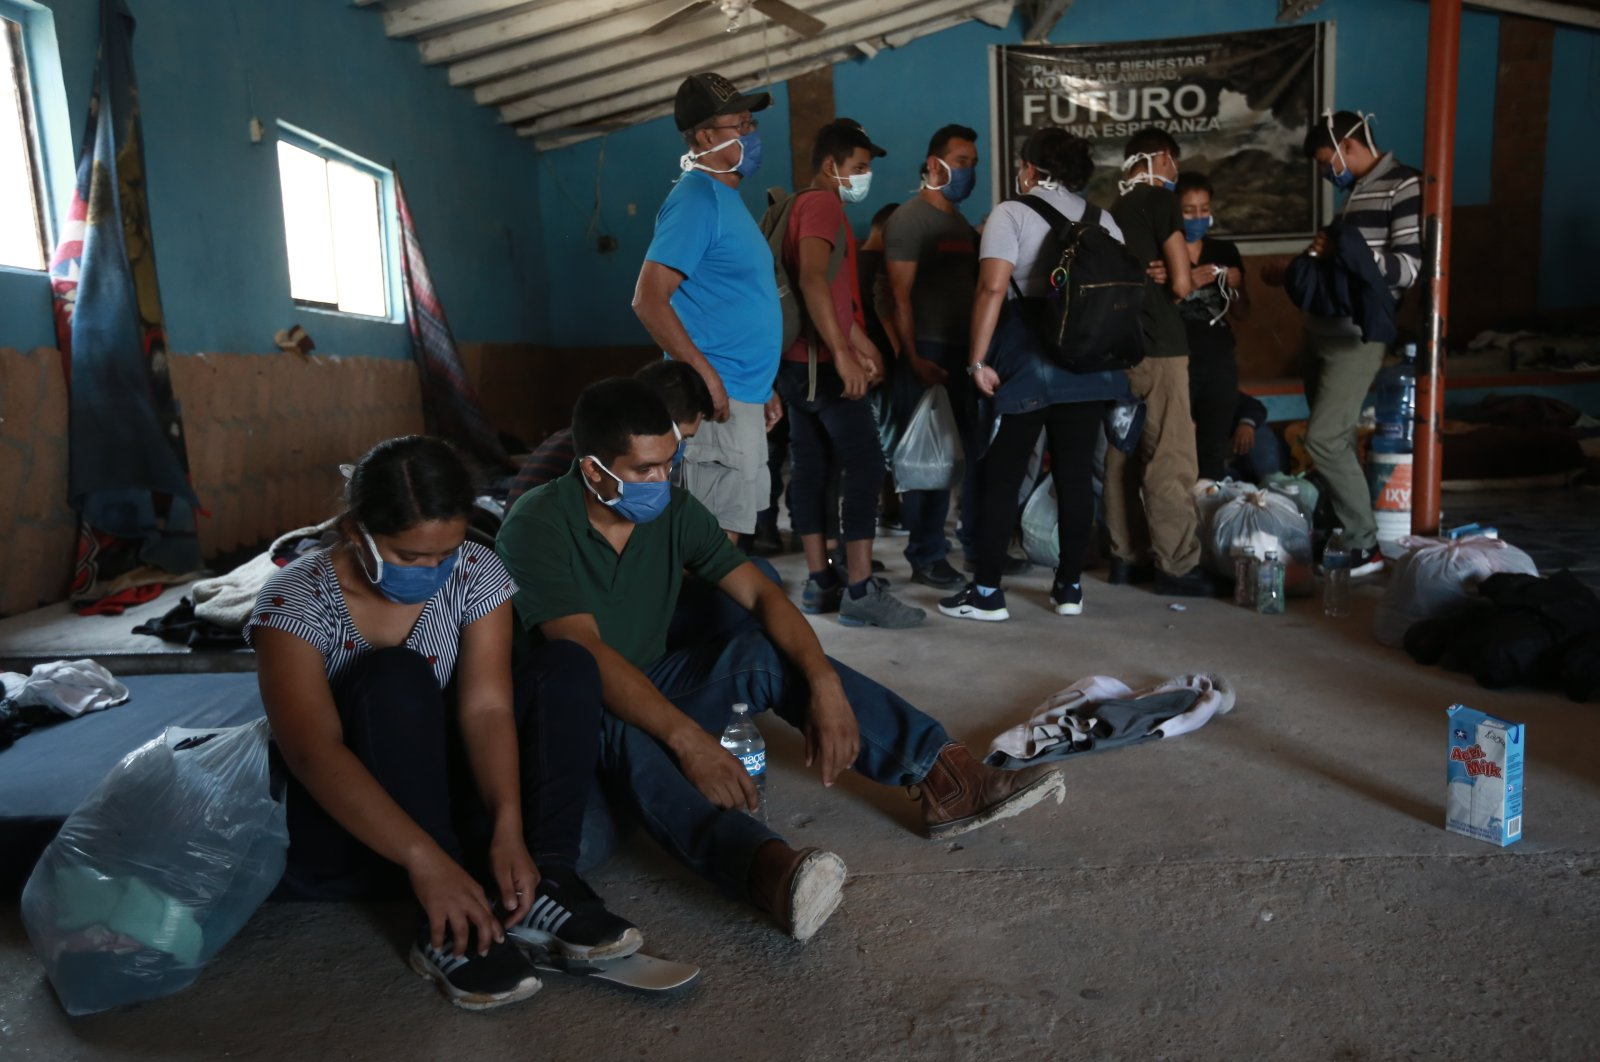 Authorities allow migrants to prepare before being escorted out of a house controlled by human smugglers, Ciudad Juarez, Mexico, July 3, 2021. (AP PHOTO)